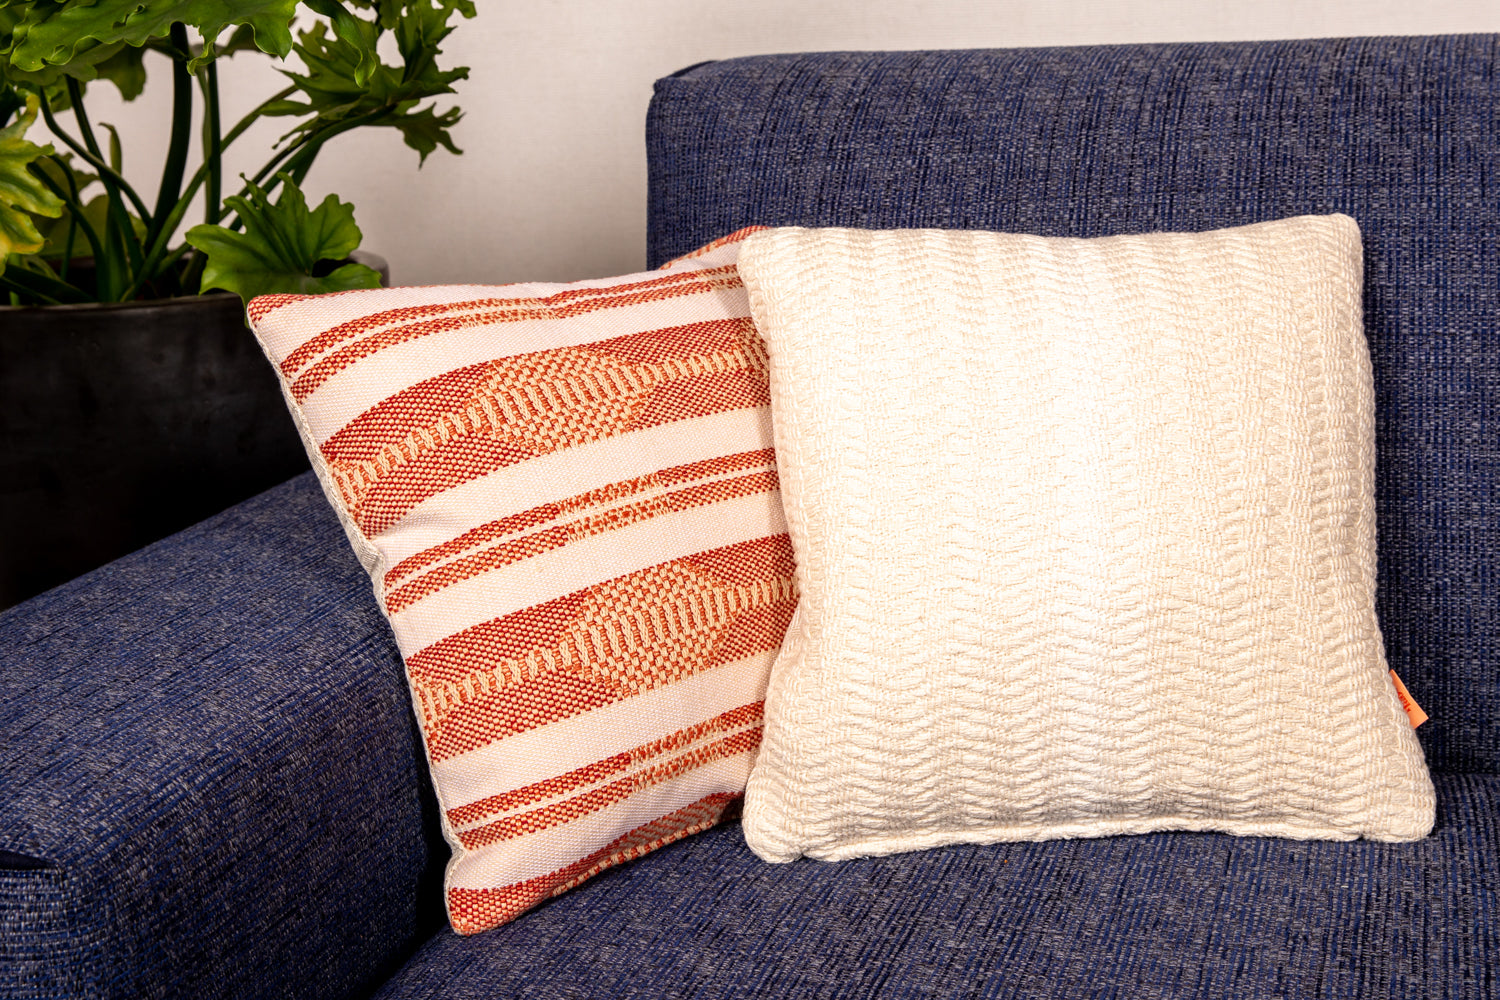 ffabb toss pillows, RADG fabrics, woven, small scale pattern